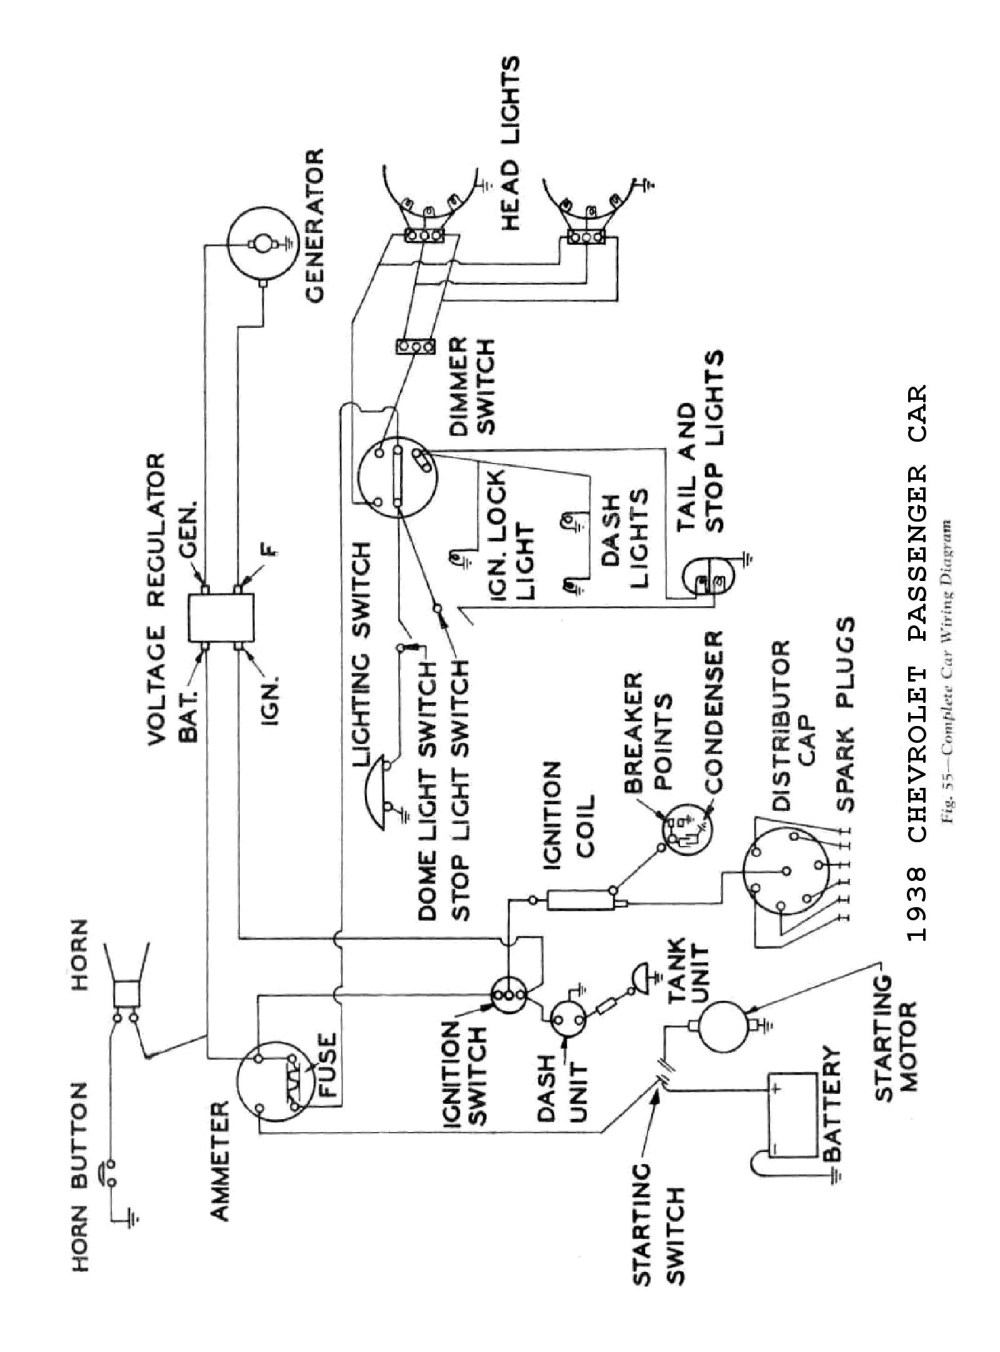 medium resolution of ignition circuit diagram for the 1955 nash 6 cylinder all models ignition circuit diagram for the 1948 54 hudson 6 cylinder